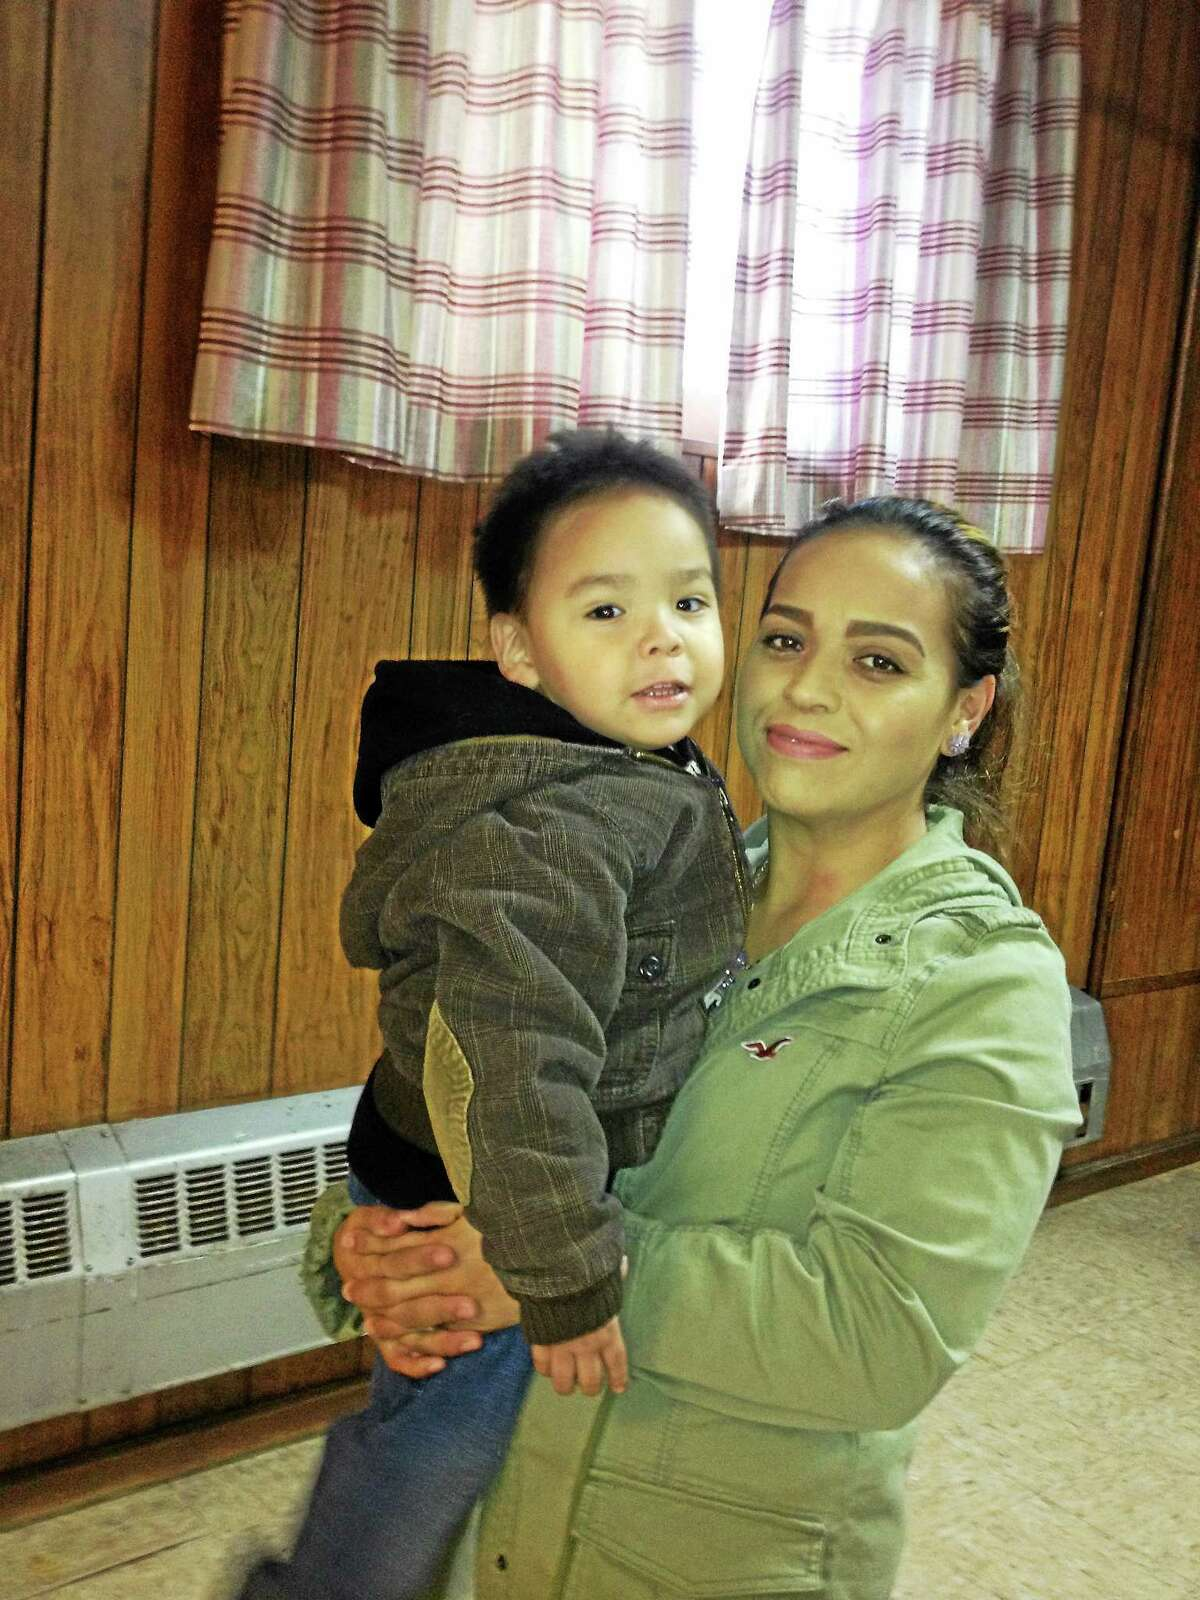 Araceli Ramirez took her son Alan, 5, to St. Rose of Lima Church to help undocumented immigrants apply for driver licenses.